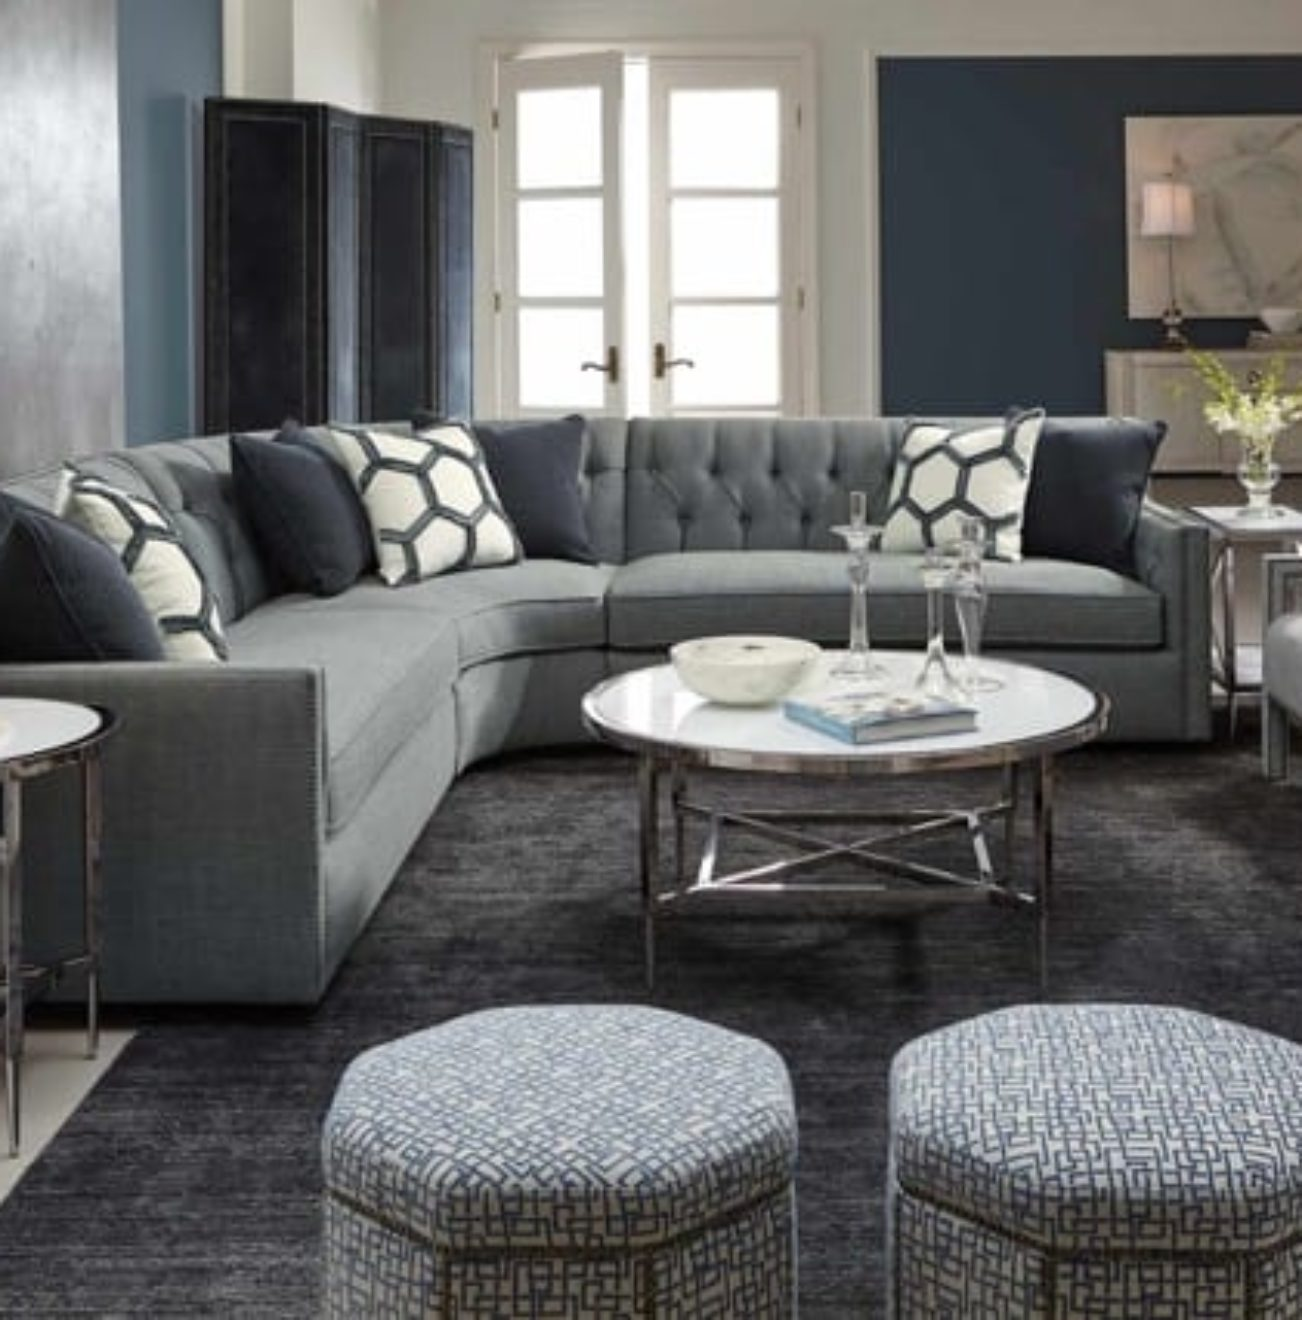 Bernhardt candace sectional